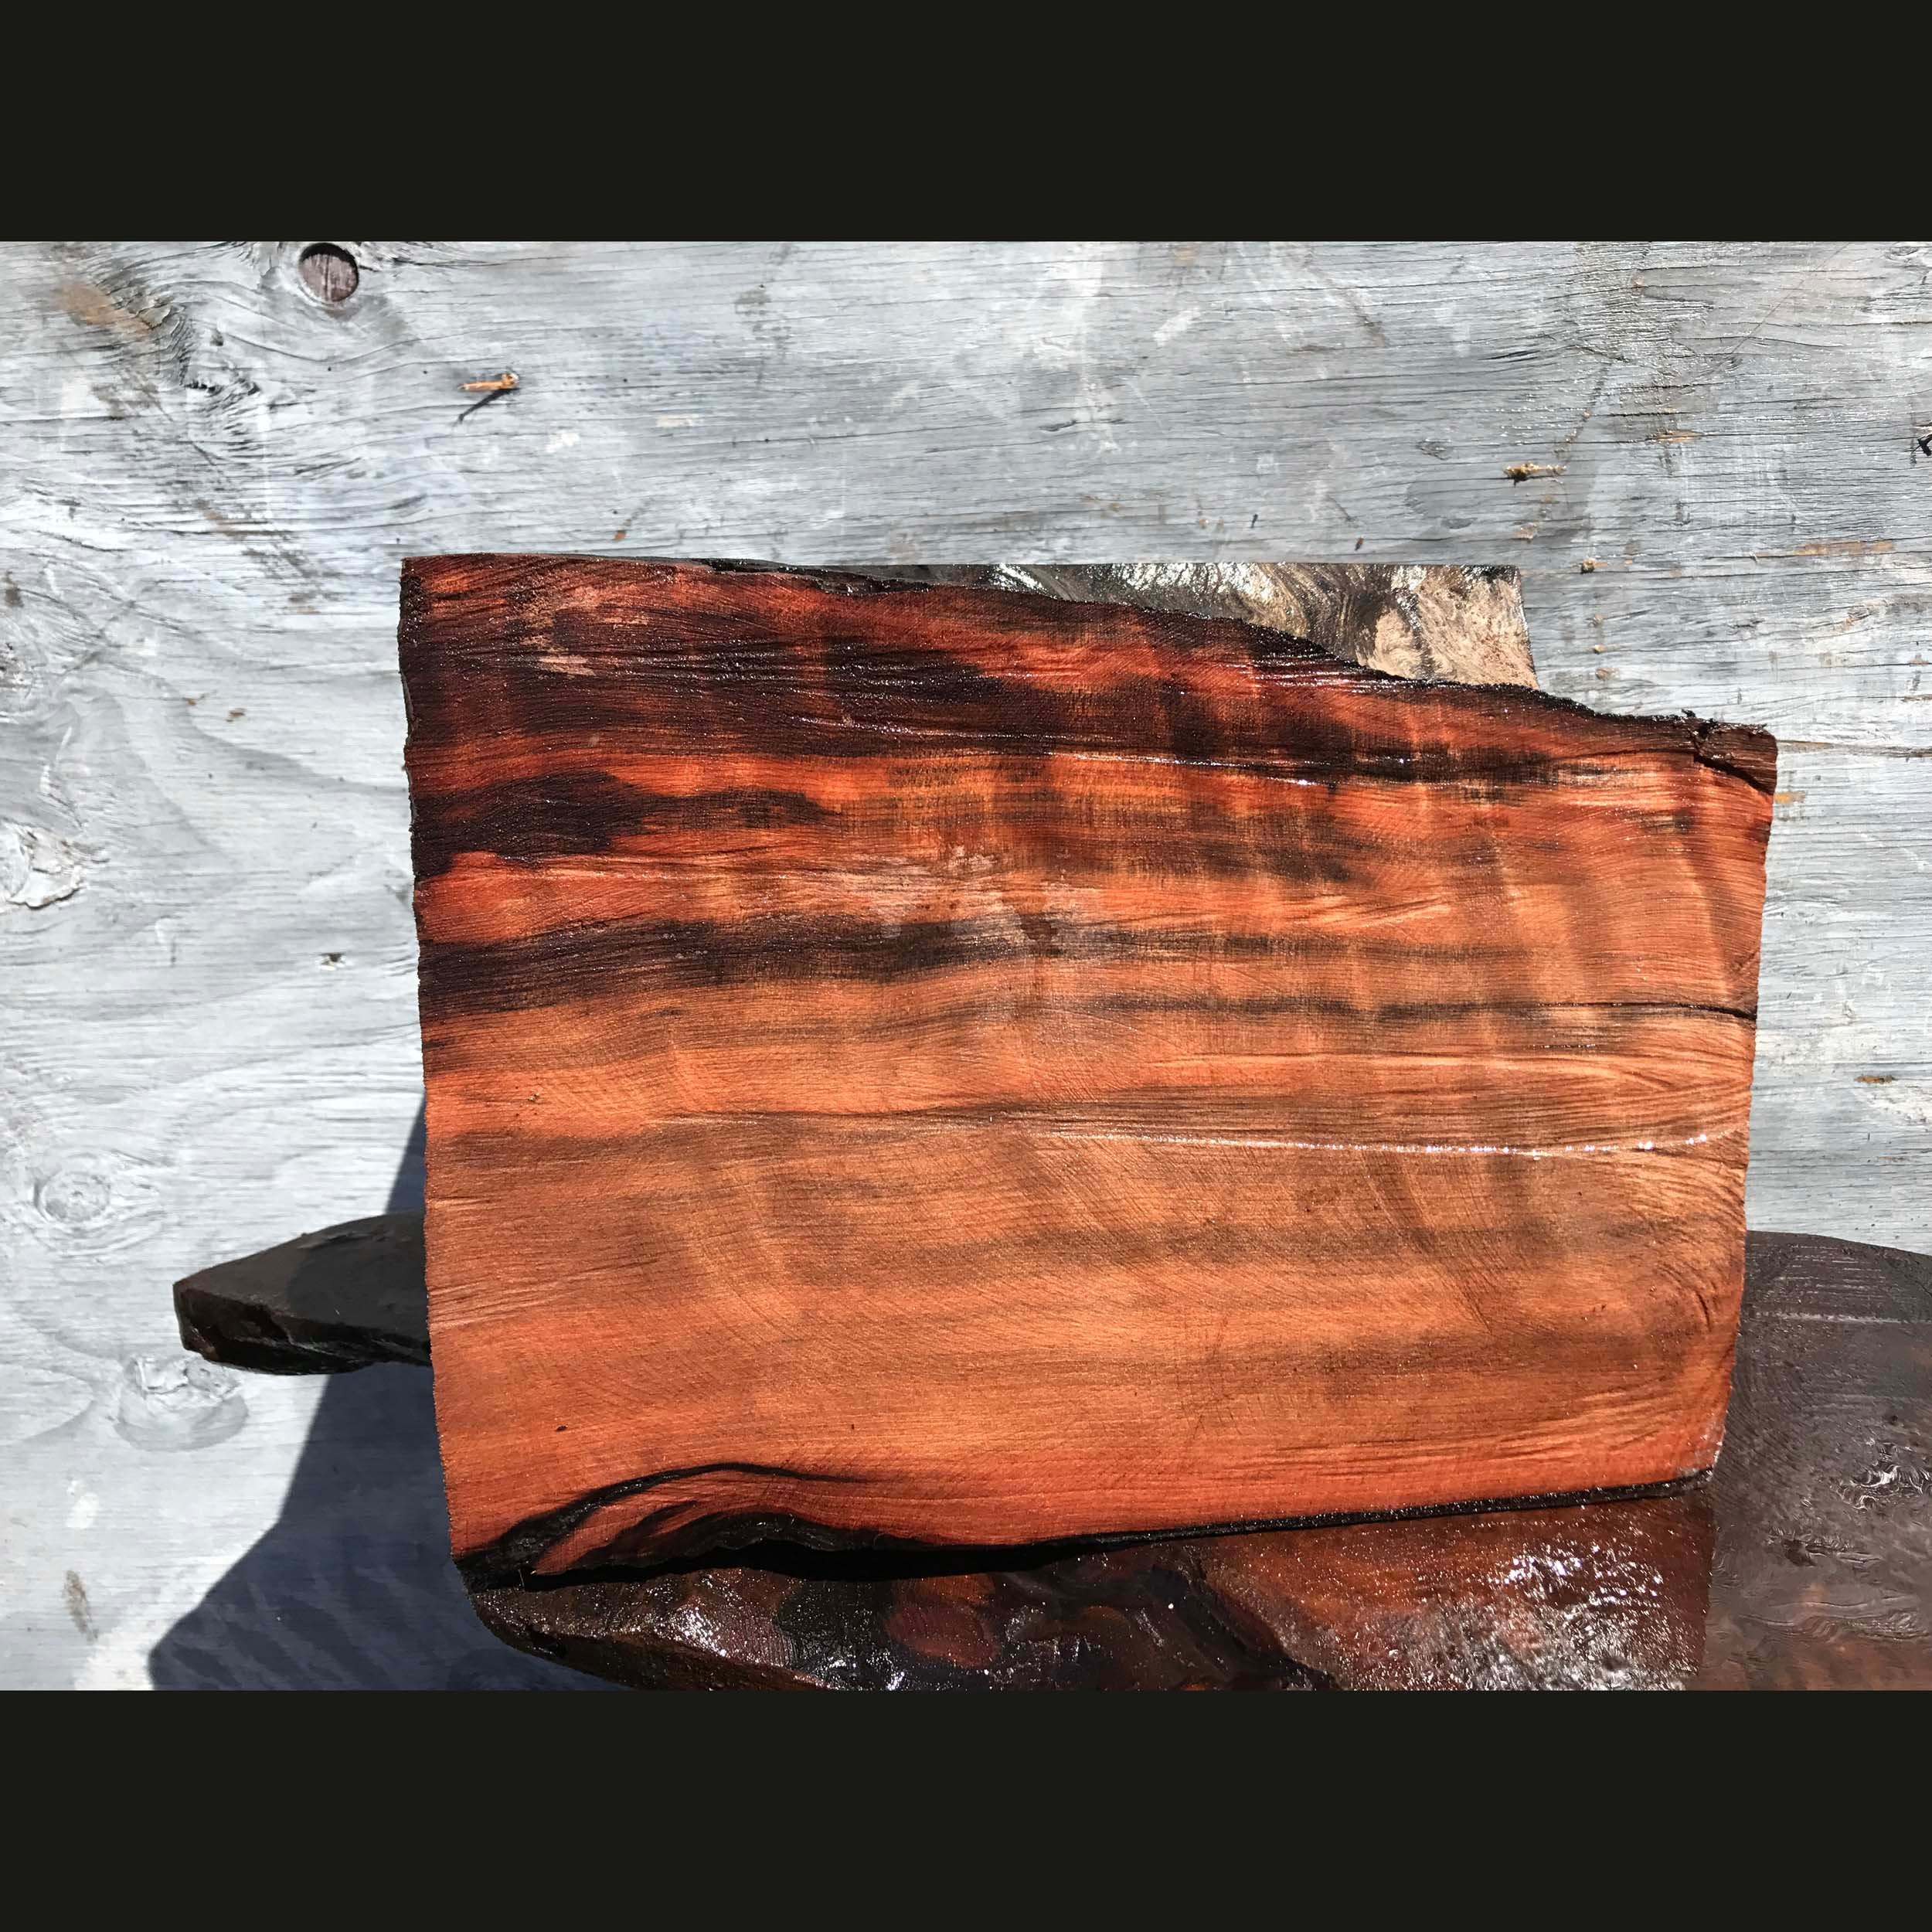 wood turning | lace burl redwood | craft wood - bl1015